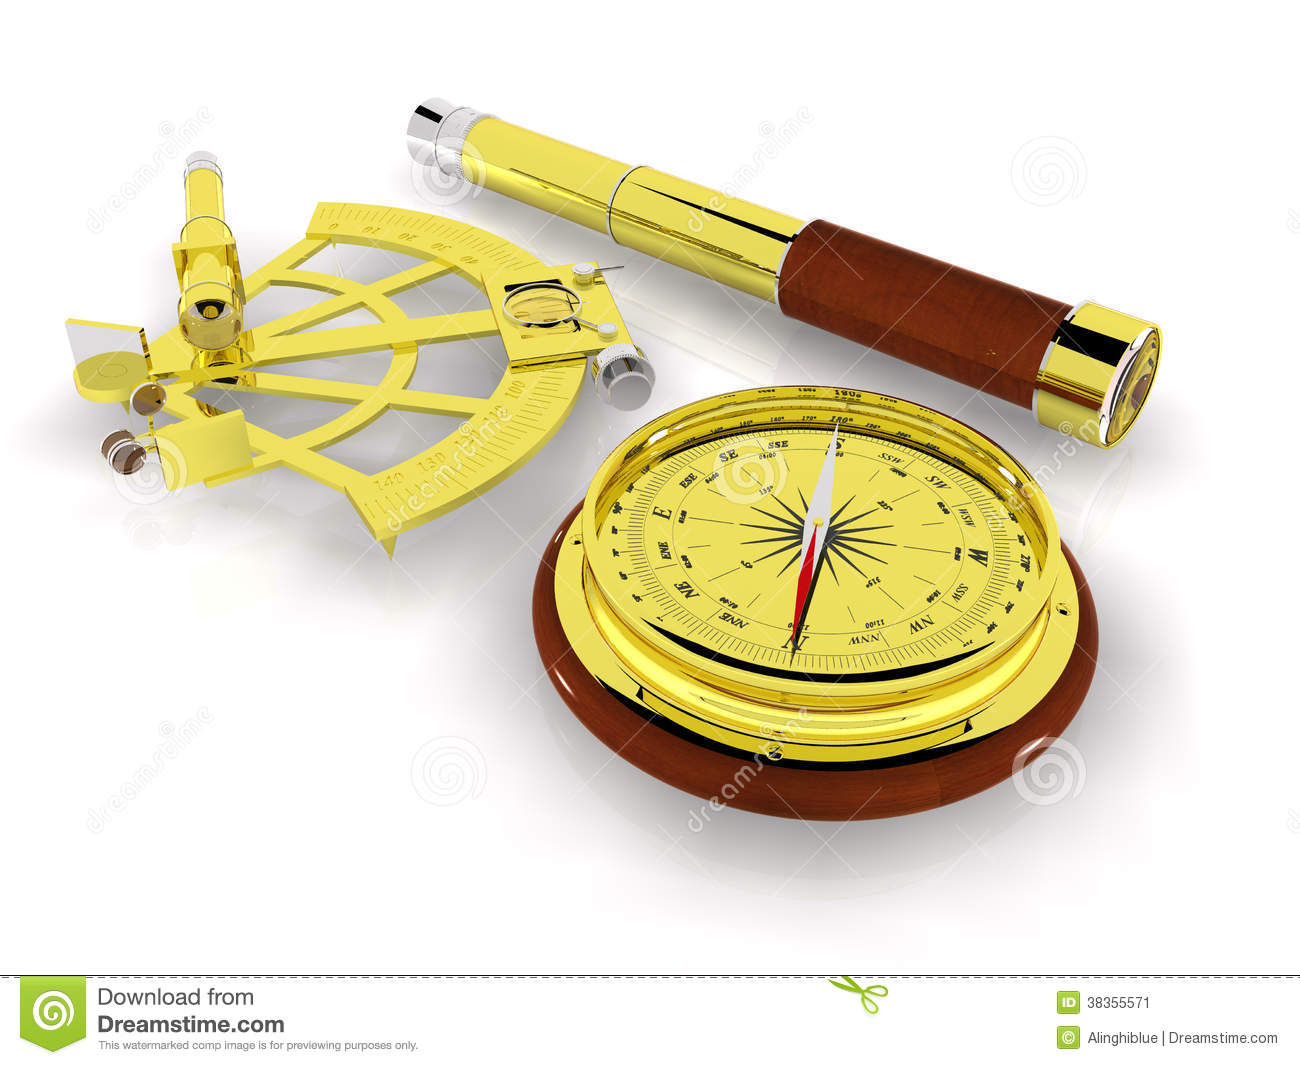 Sextant And Telescope Royalty Free Stock Image - Image: 35705266